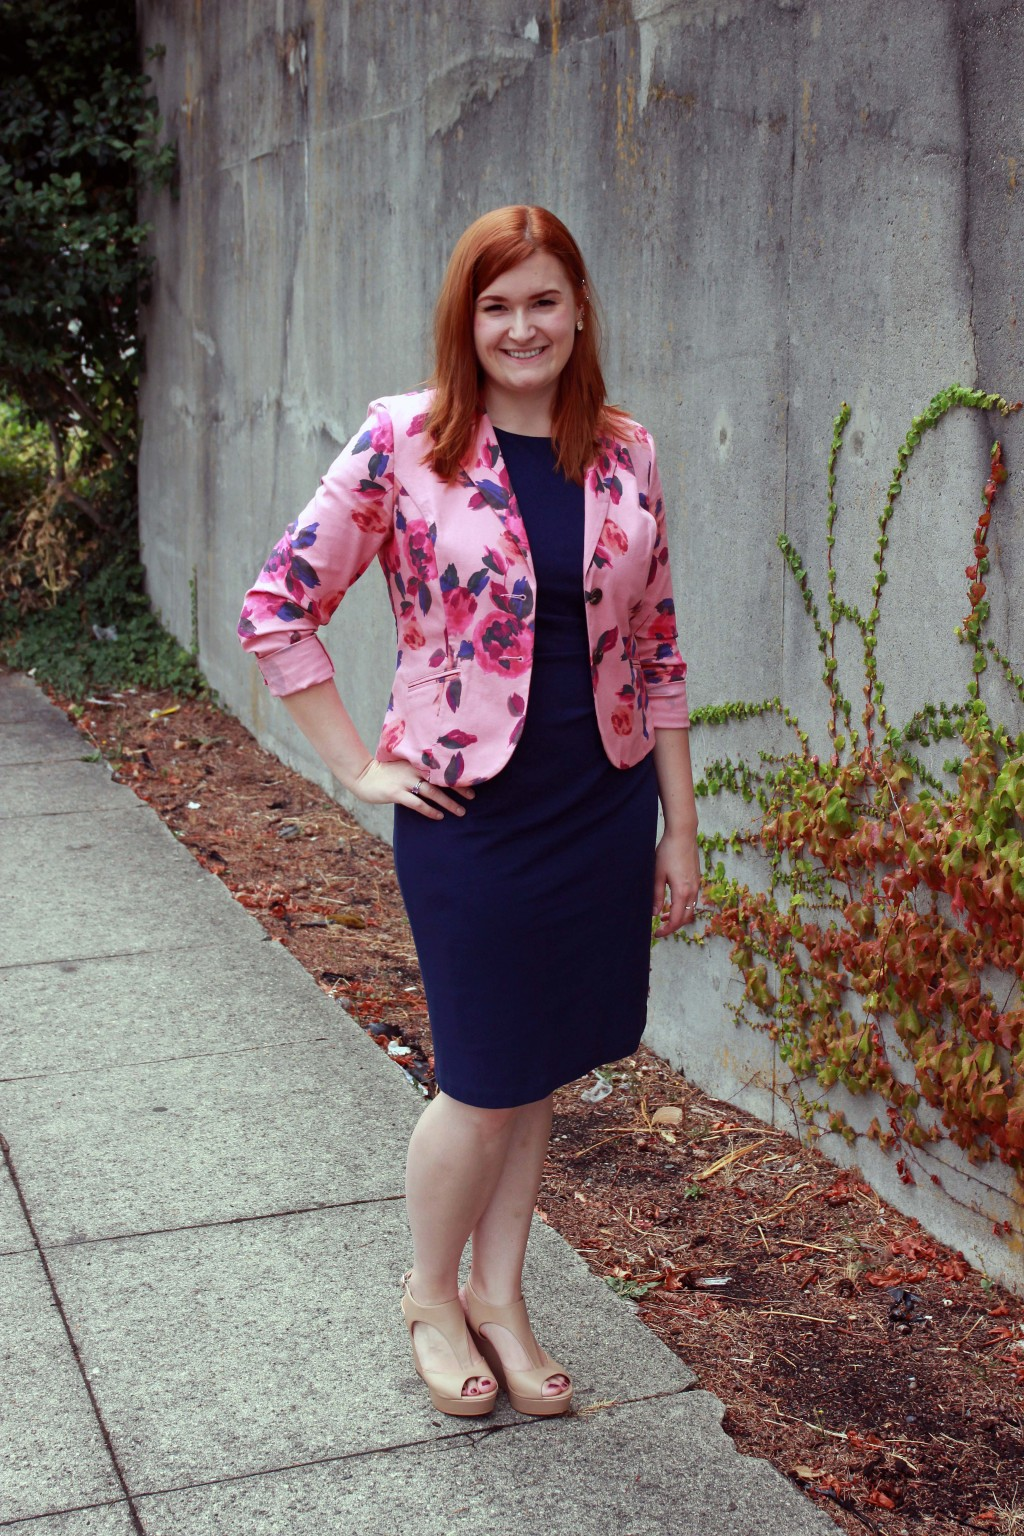 Fall dress with summer blazer to transition seasons